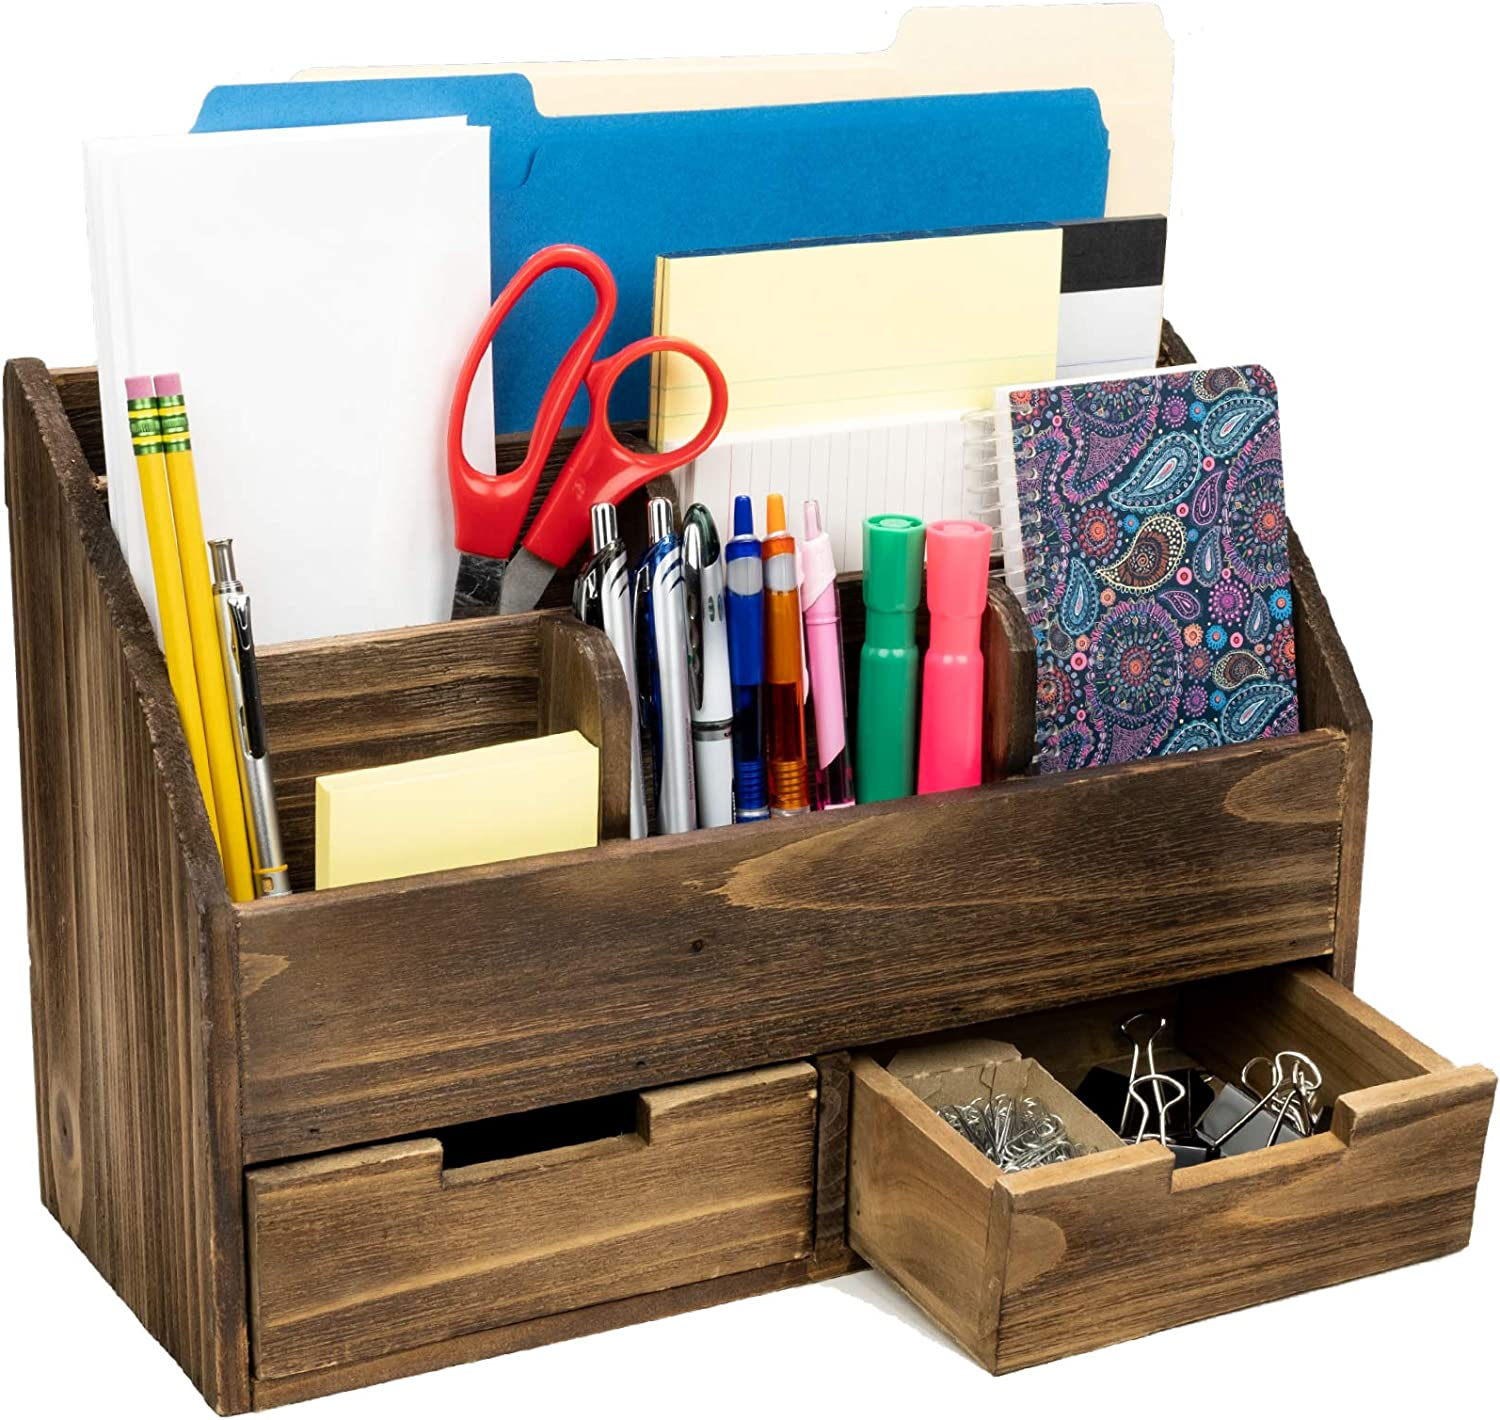 Rustic Wood Office Desk Organizer: Includes 6 Compartments and 2 Drawers to Organize Desk Accessories, Mail, Pens, Notebooks, Folders, Pencils and Office Supplies (Dark Brown)